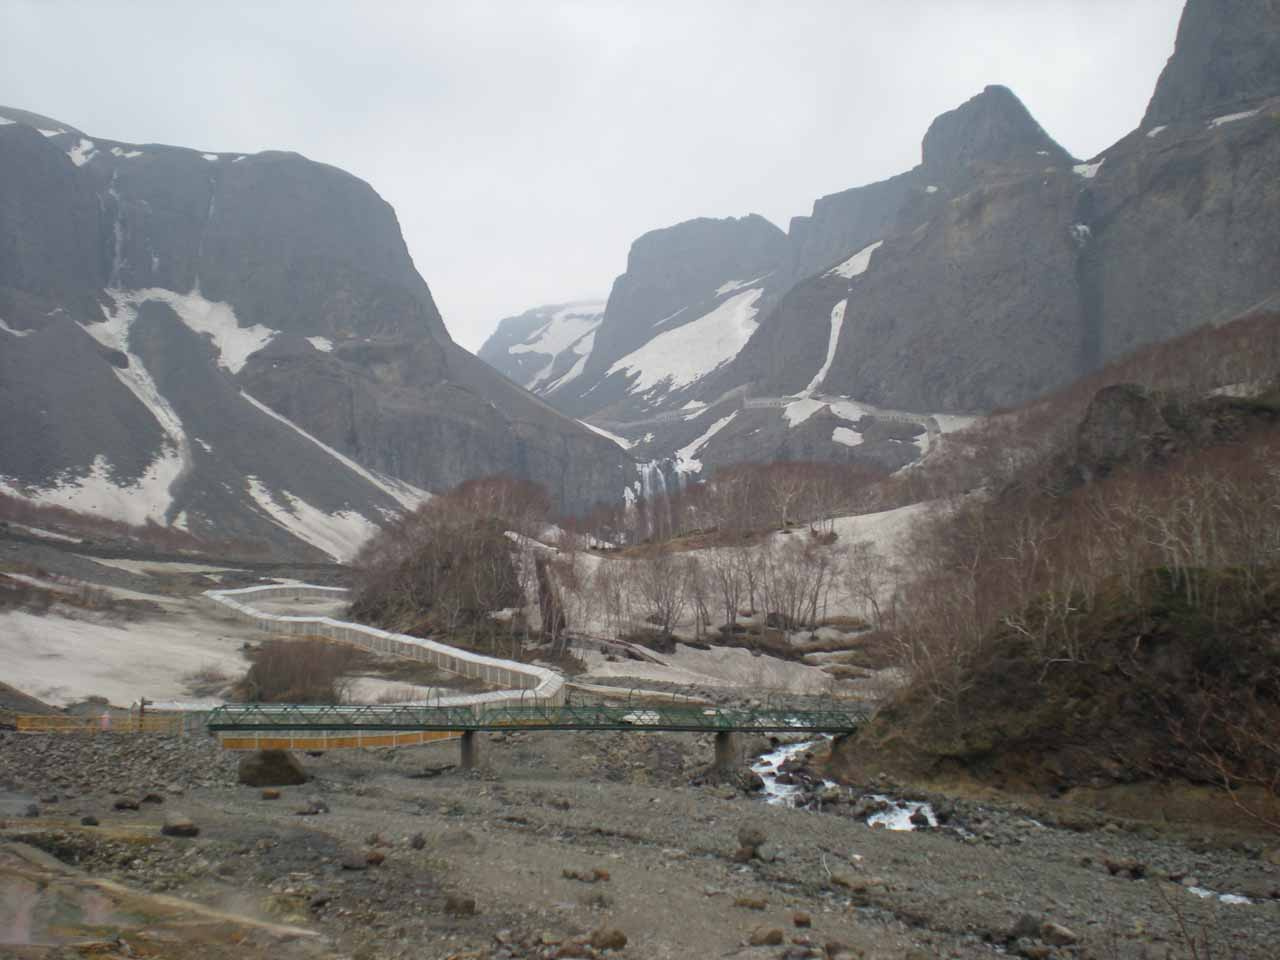 At the trailhead to Changbai Waterfall with the falls in the distance